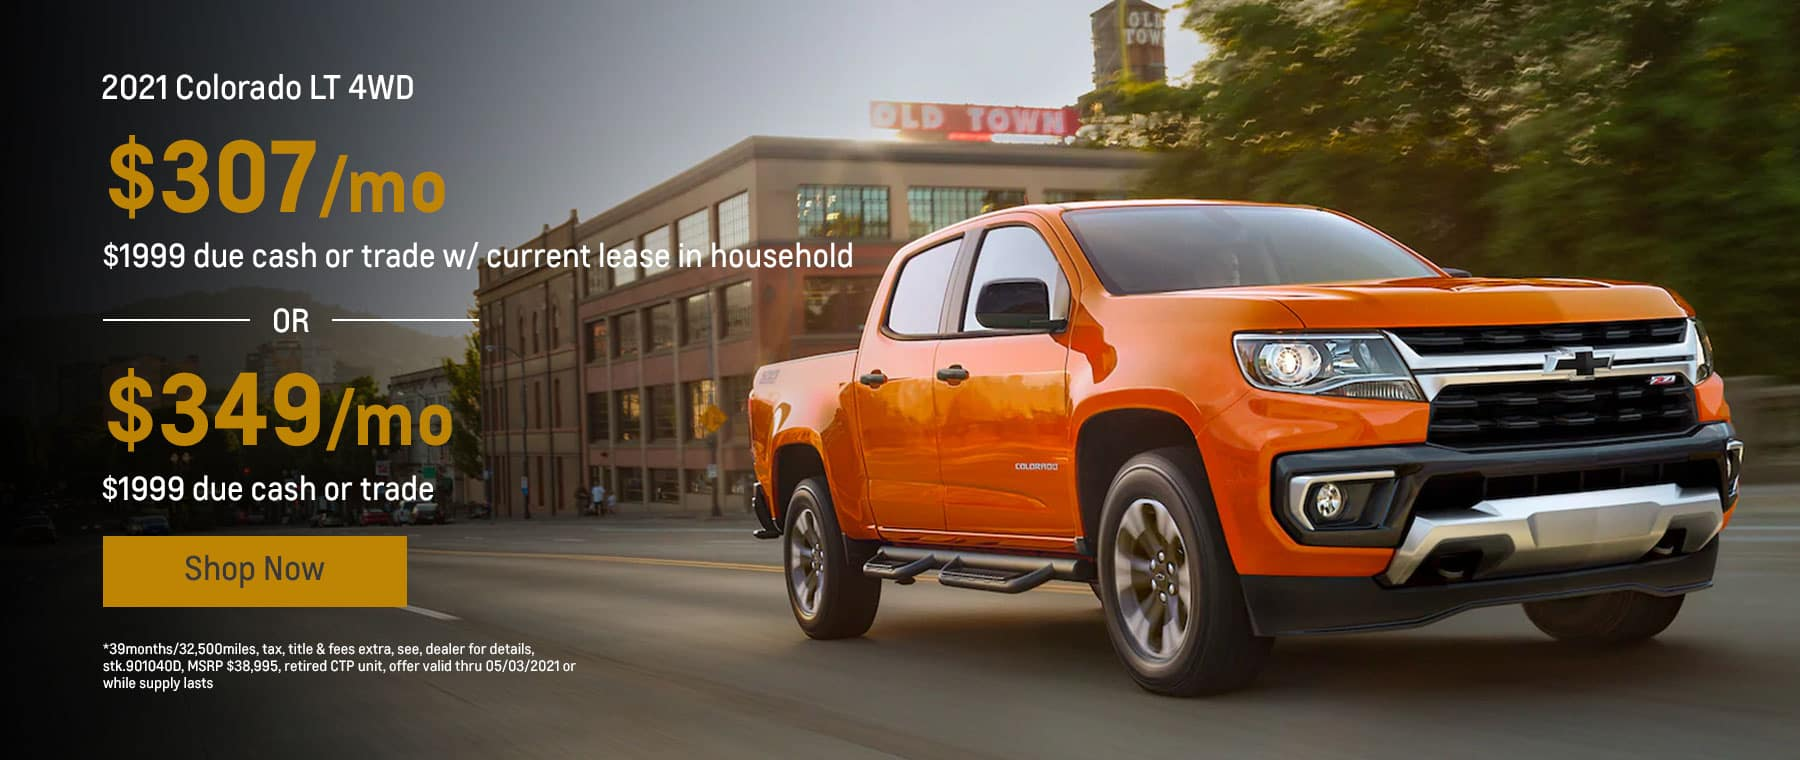 2021 Colorado LT 4WD, $307mo.* $1999 due cash or trade w/ current lease in household OR $349mo.* $1999 due cash or trade